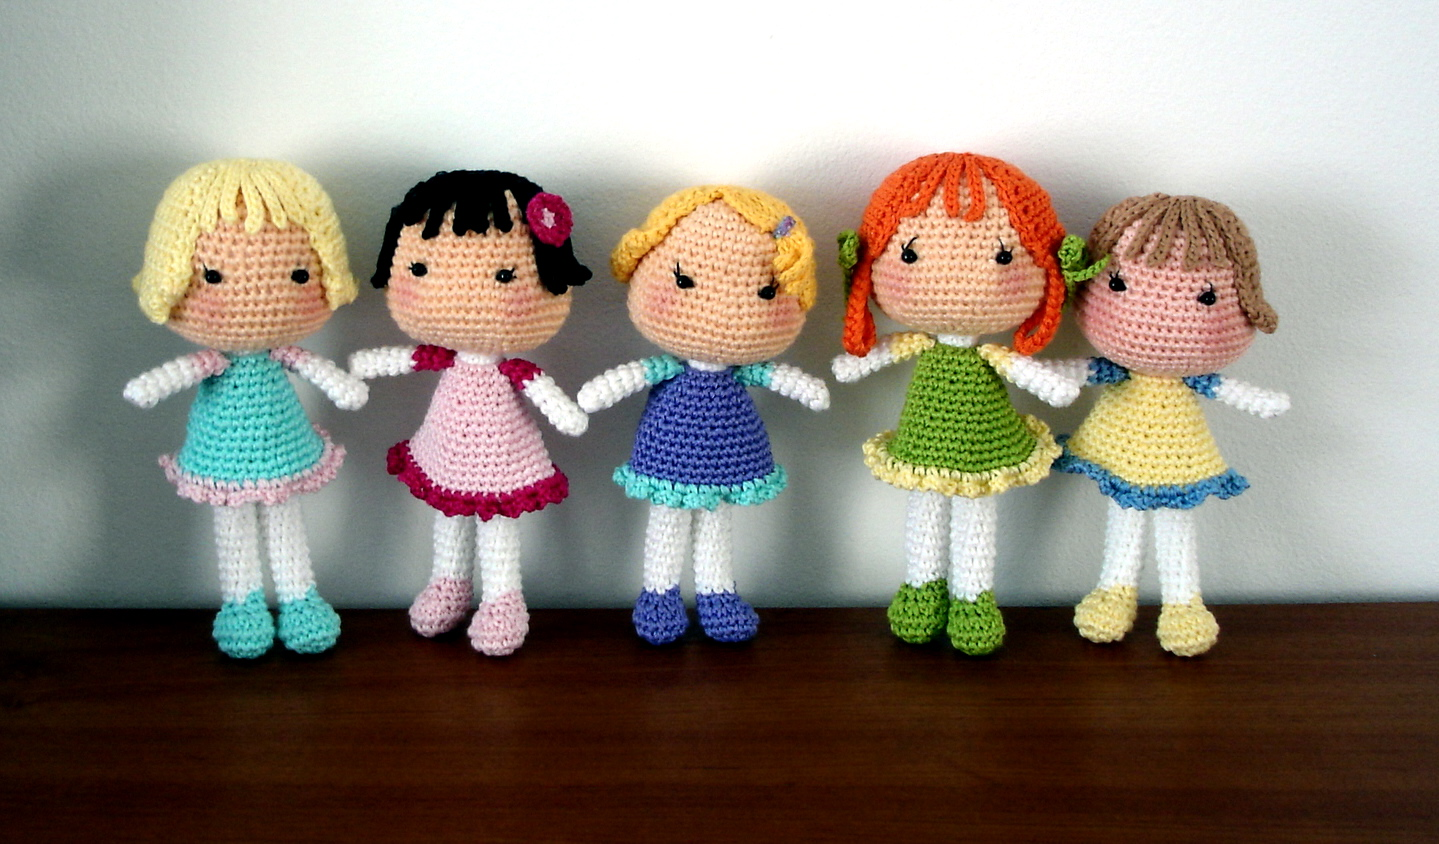 Amigurumi Doll Tutorial For Beginners : Amigurumi G